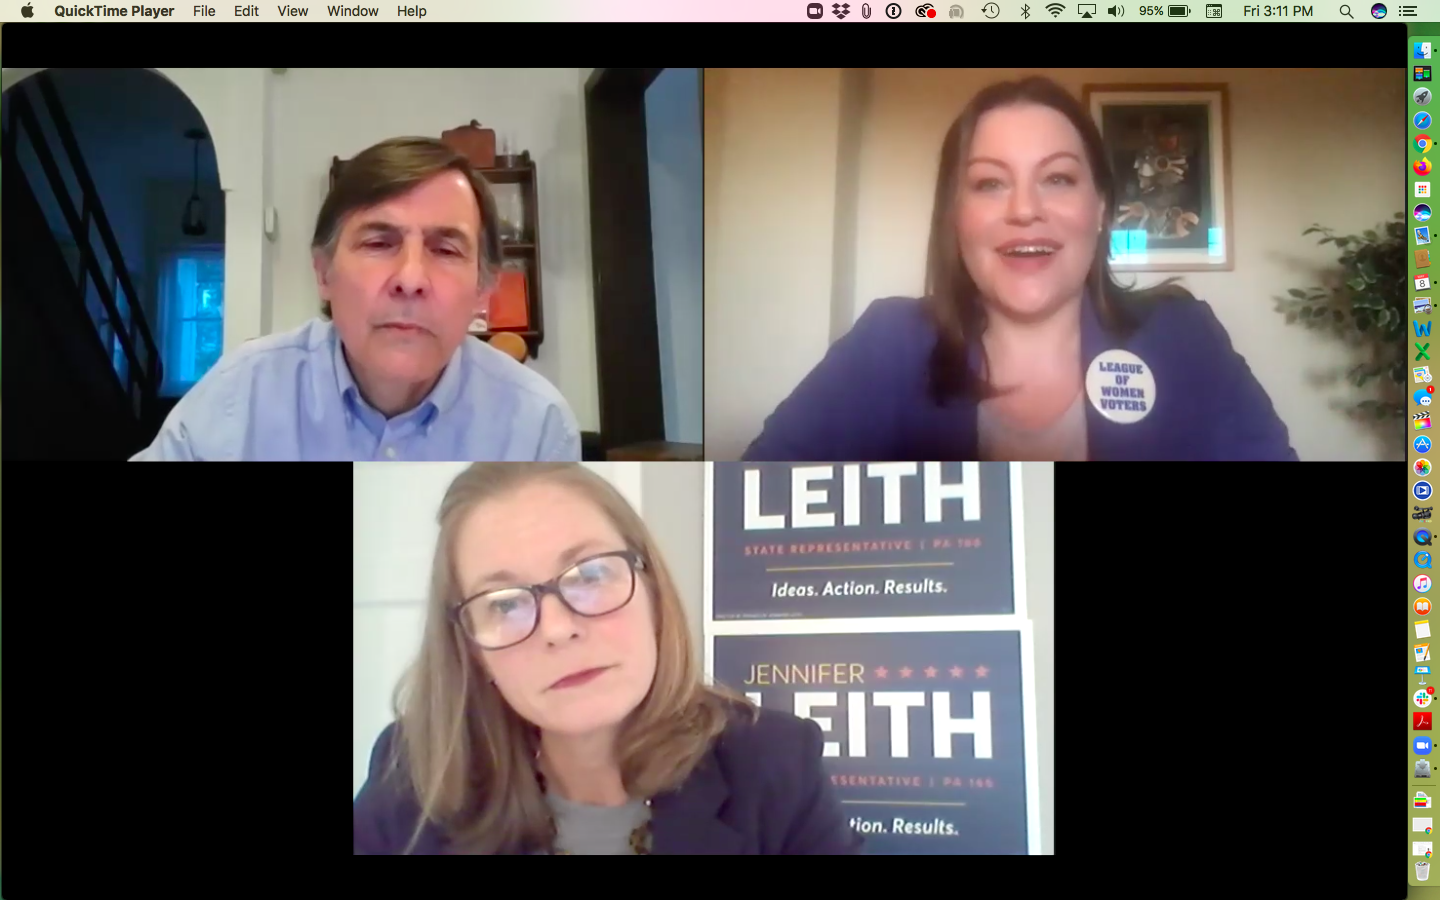 Virtual Candidate Forum Vitali/Leith